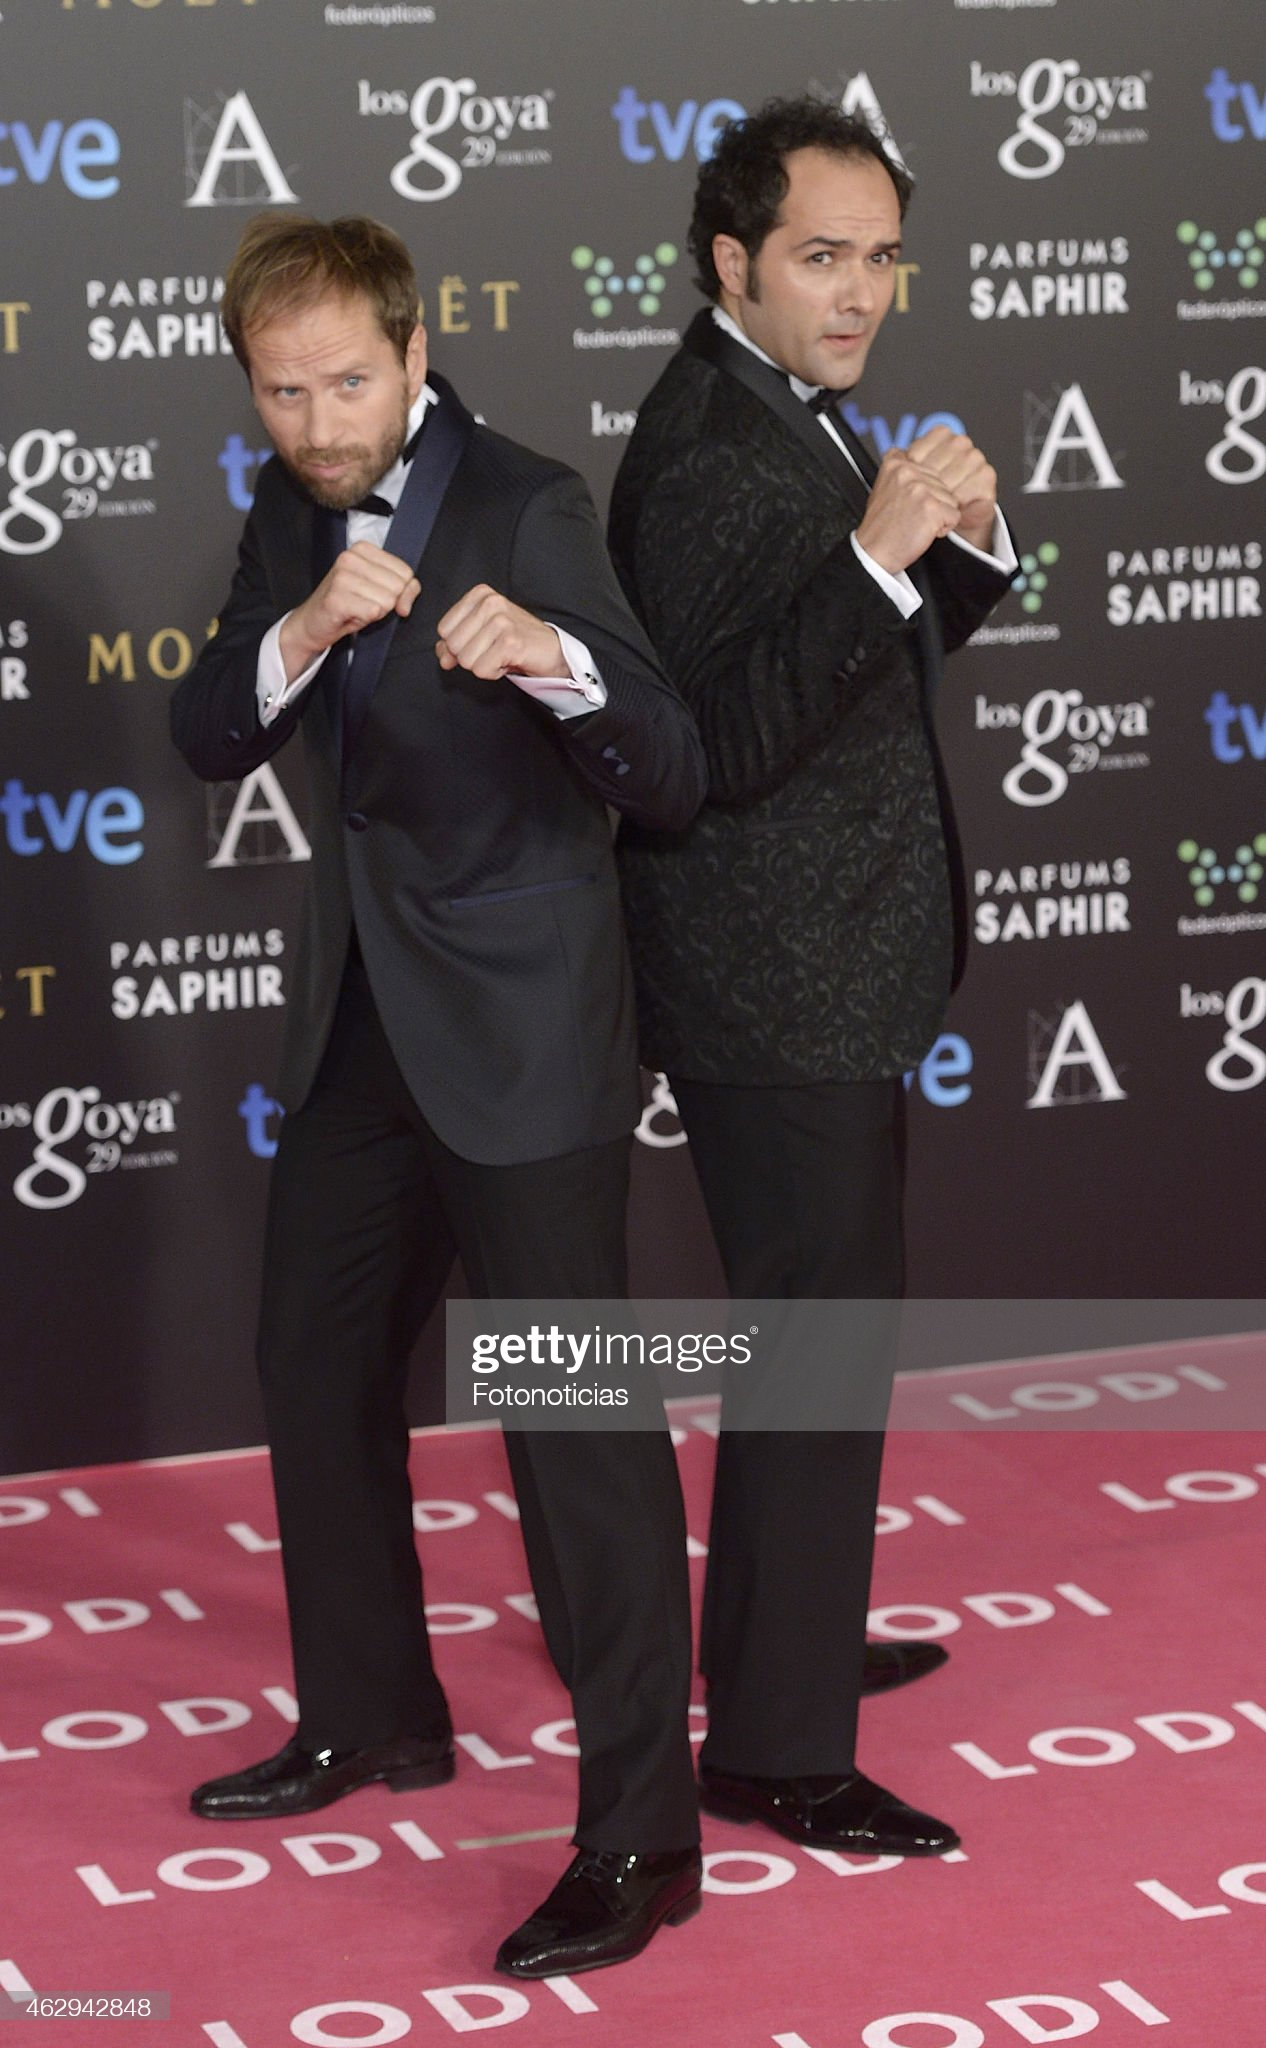 ¿Cuánto mide Alfonso Sánchez? - Altura Alberto-lopez-and-alfonso-sanchez-attend-goya-cinema-awards-2015-at-picture-id462942848?s=2048x2048